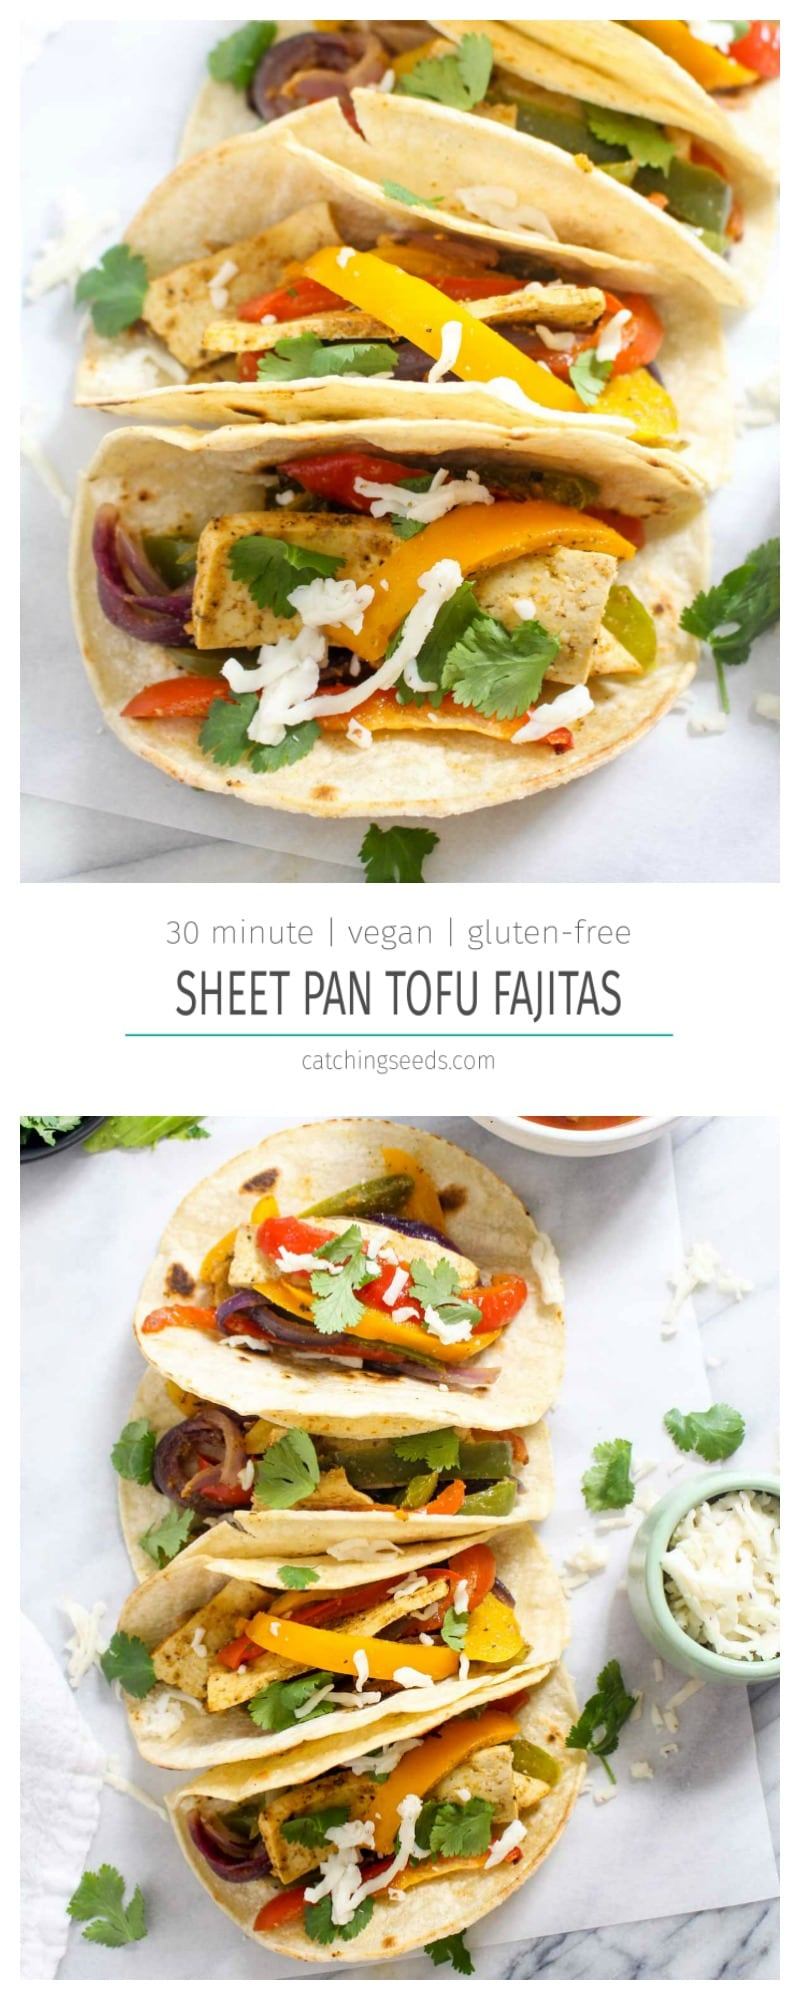 These Sheet Pan Tofu Fajitas are a quick one pan meal. This dinner recipe is packed with flavorful spices and perfectly cooked veggies, plus the tofu adds 13 grams of plant based protein protein per serving! | CatchingSeeds.com